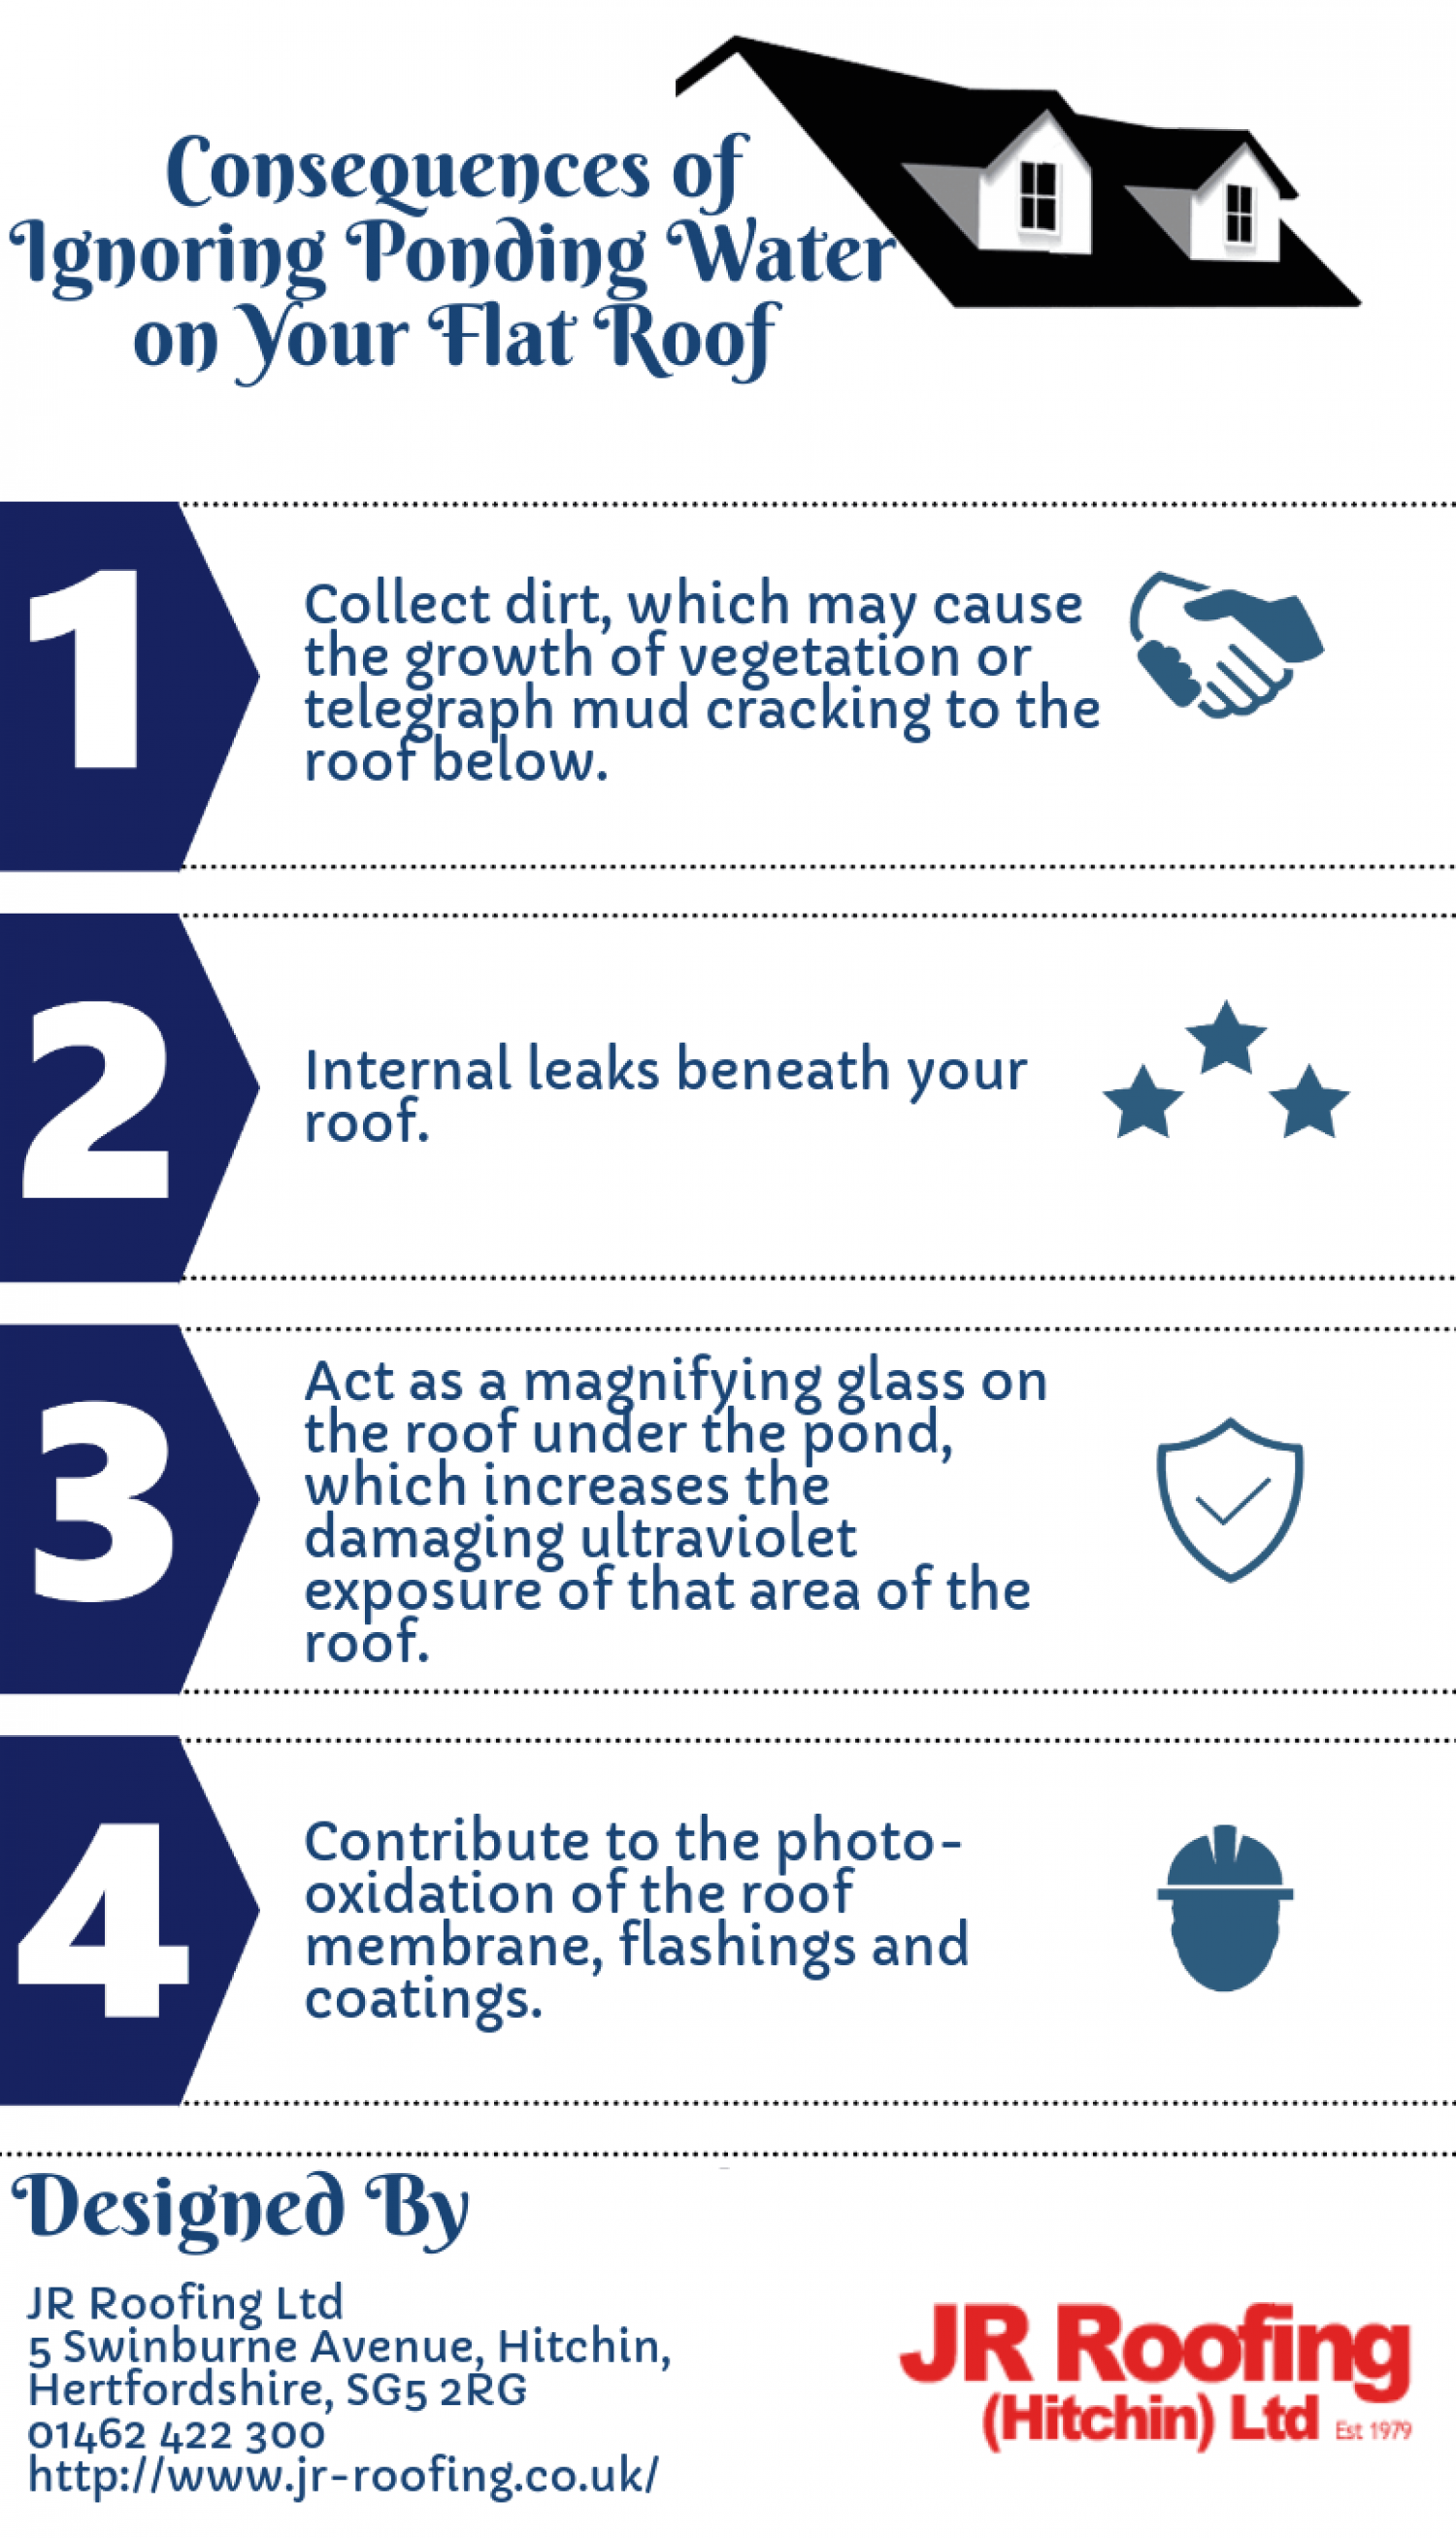 Consequences of Ignoring Ponding Water on Your Flat Roof Infographic